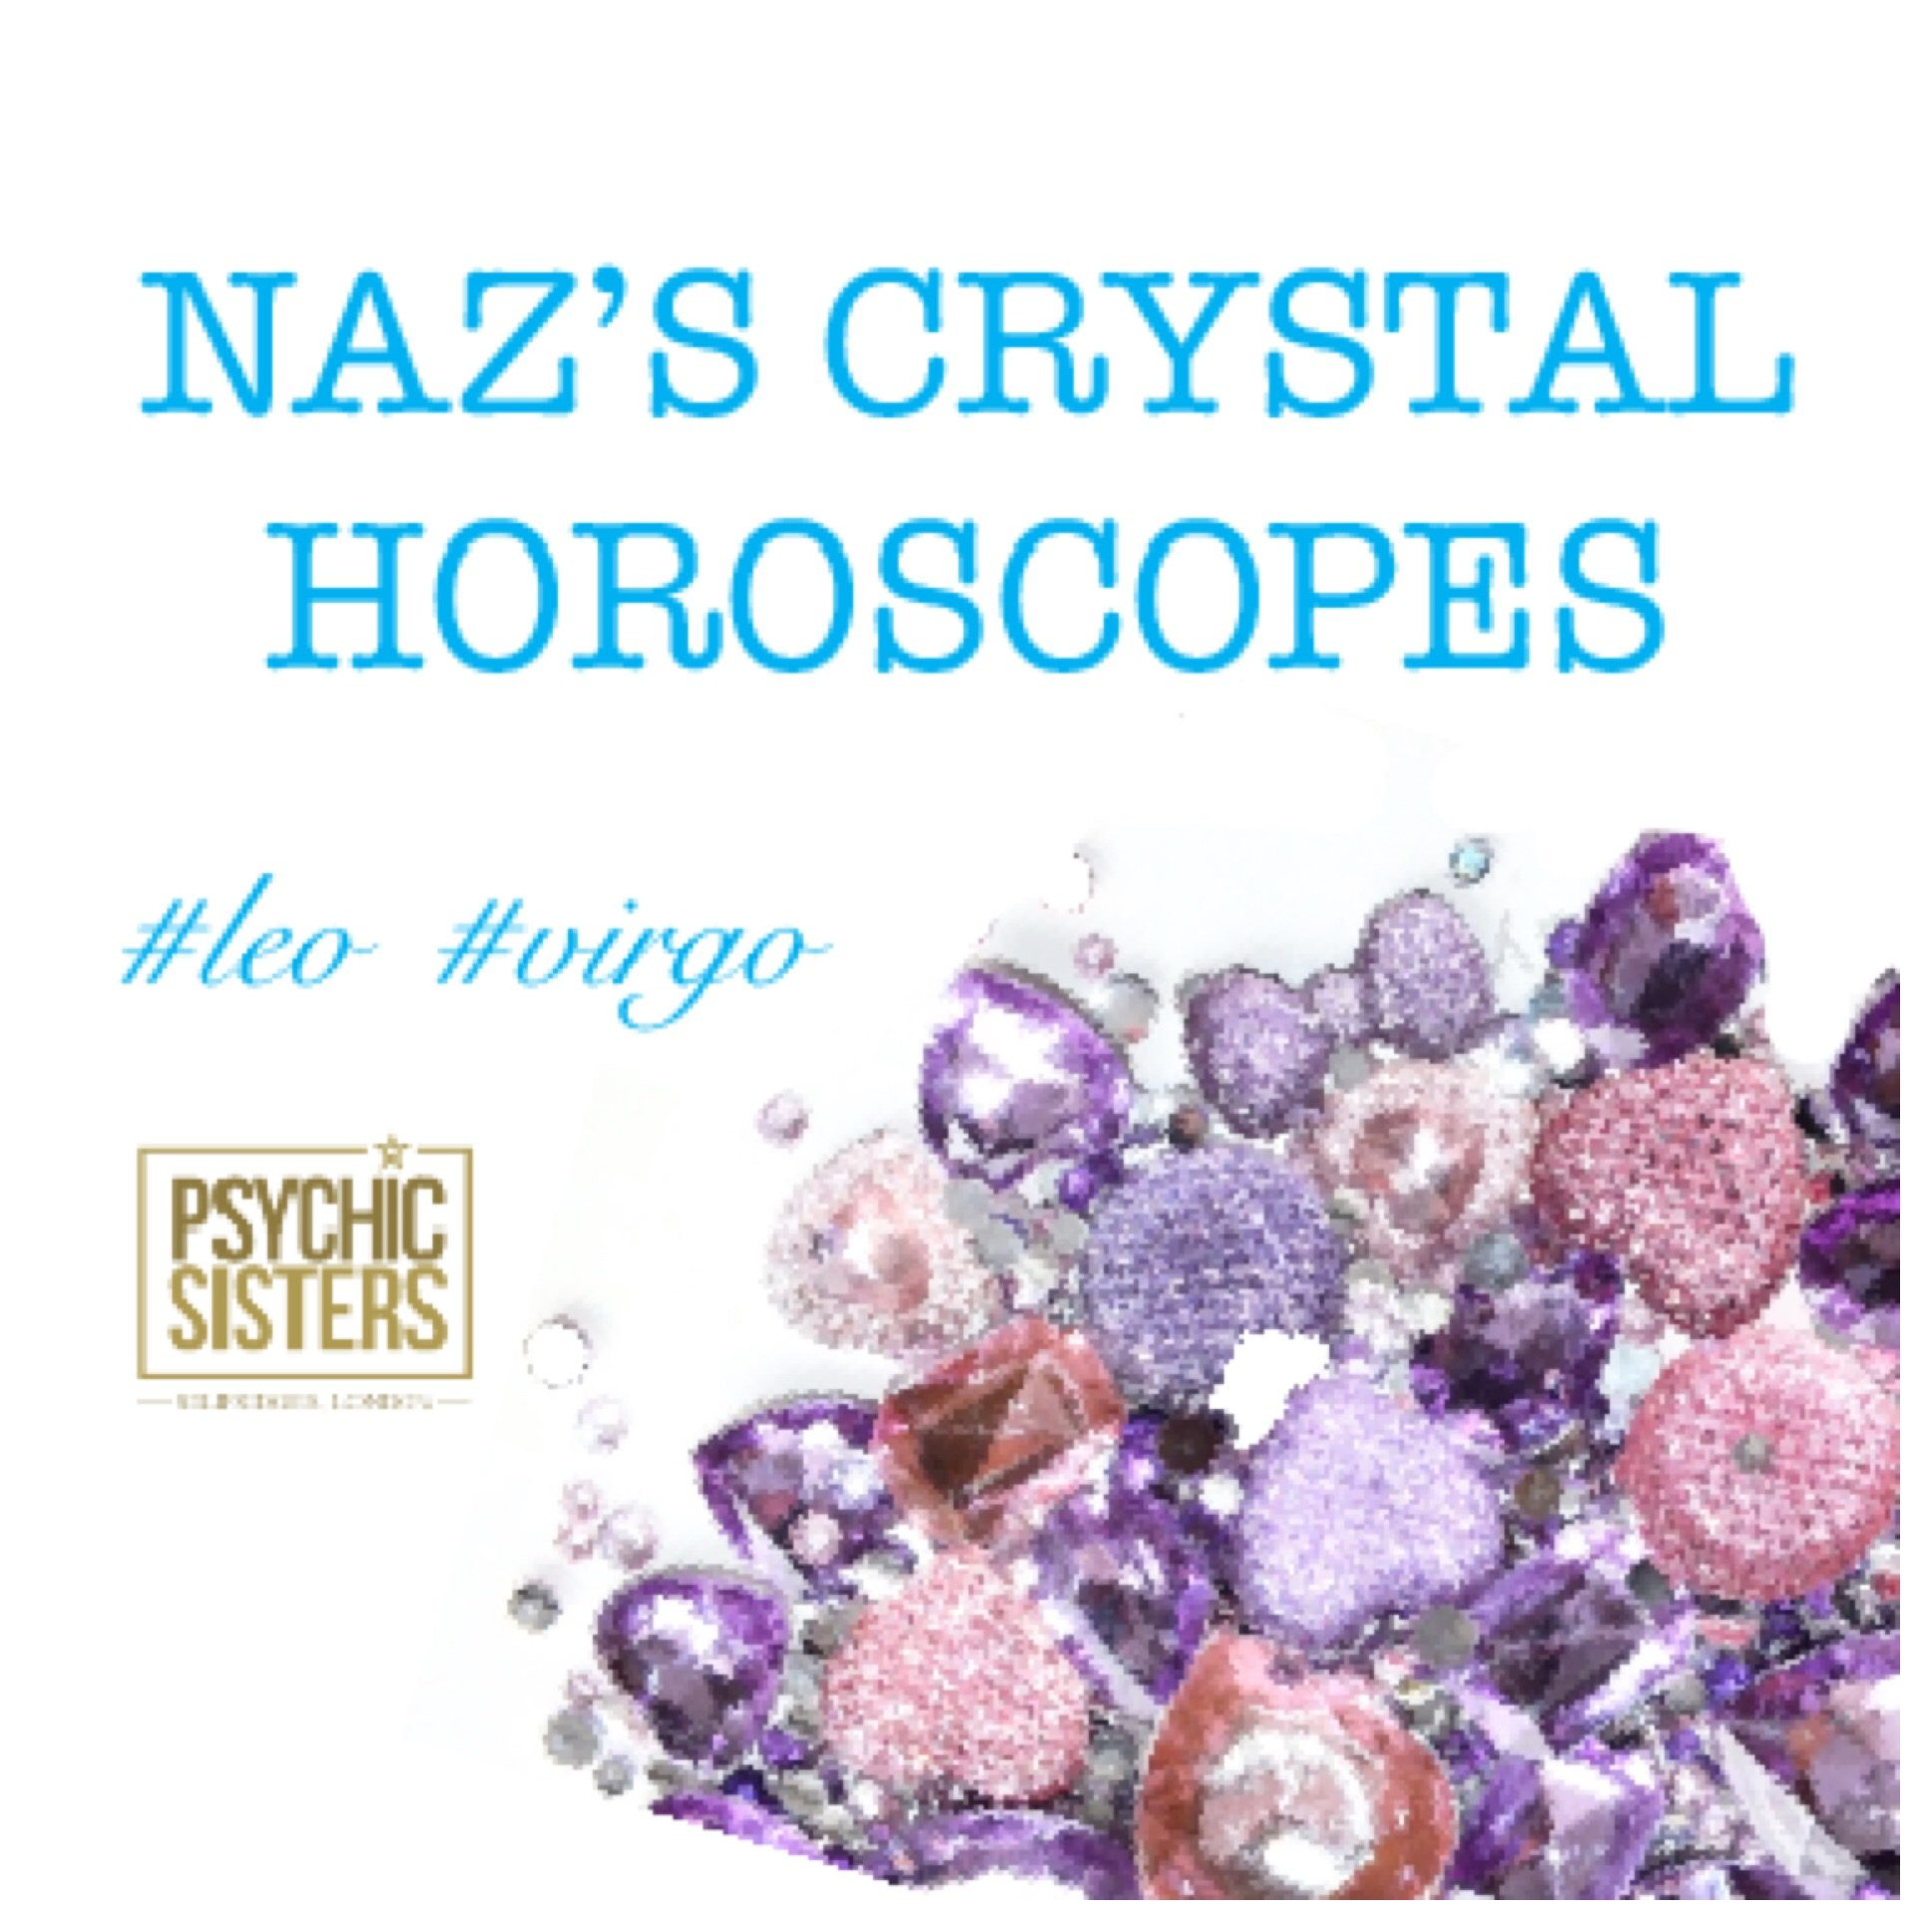 Naz's crystal horoscopes 13th - 19th May 2018